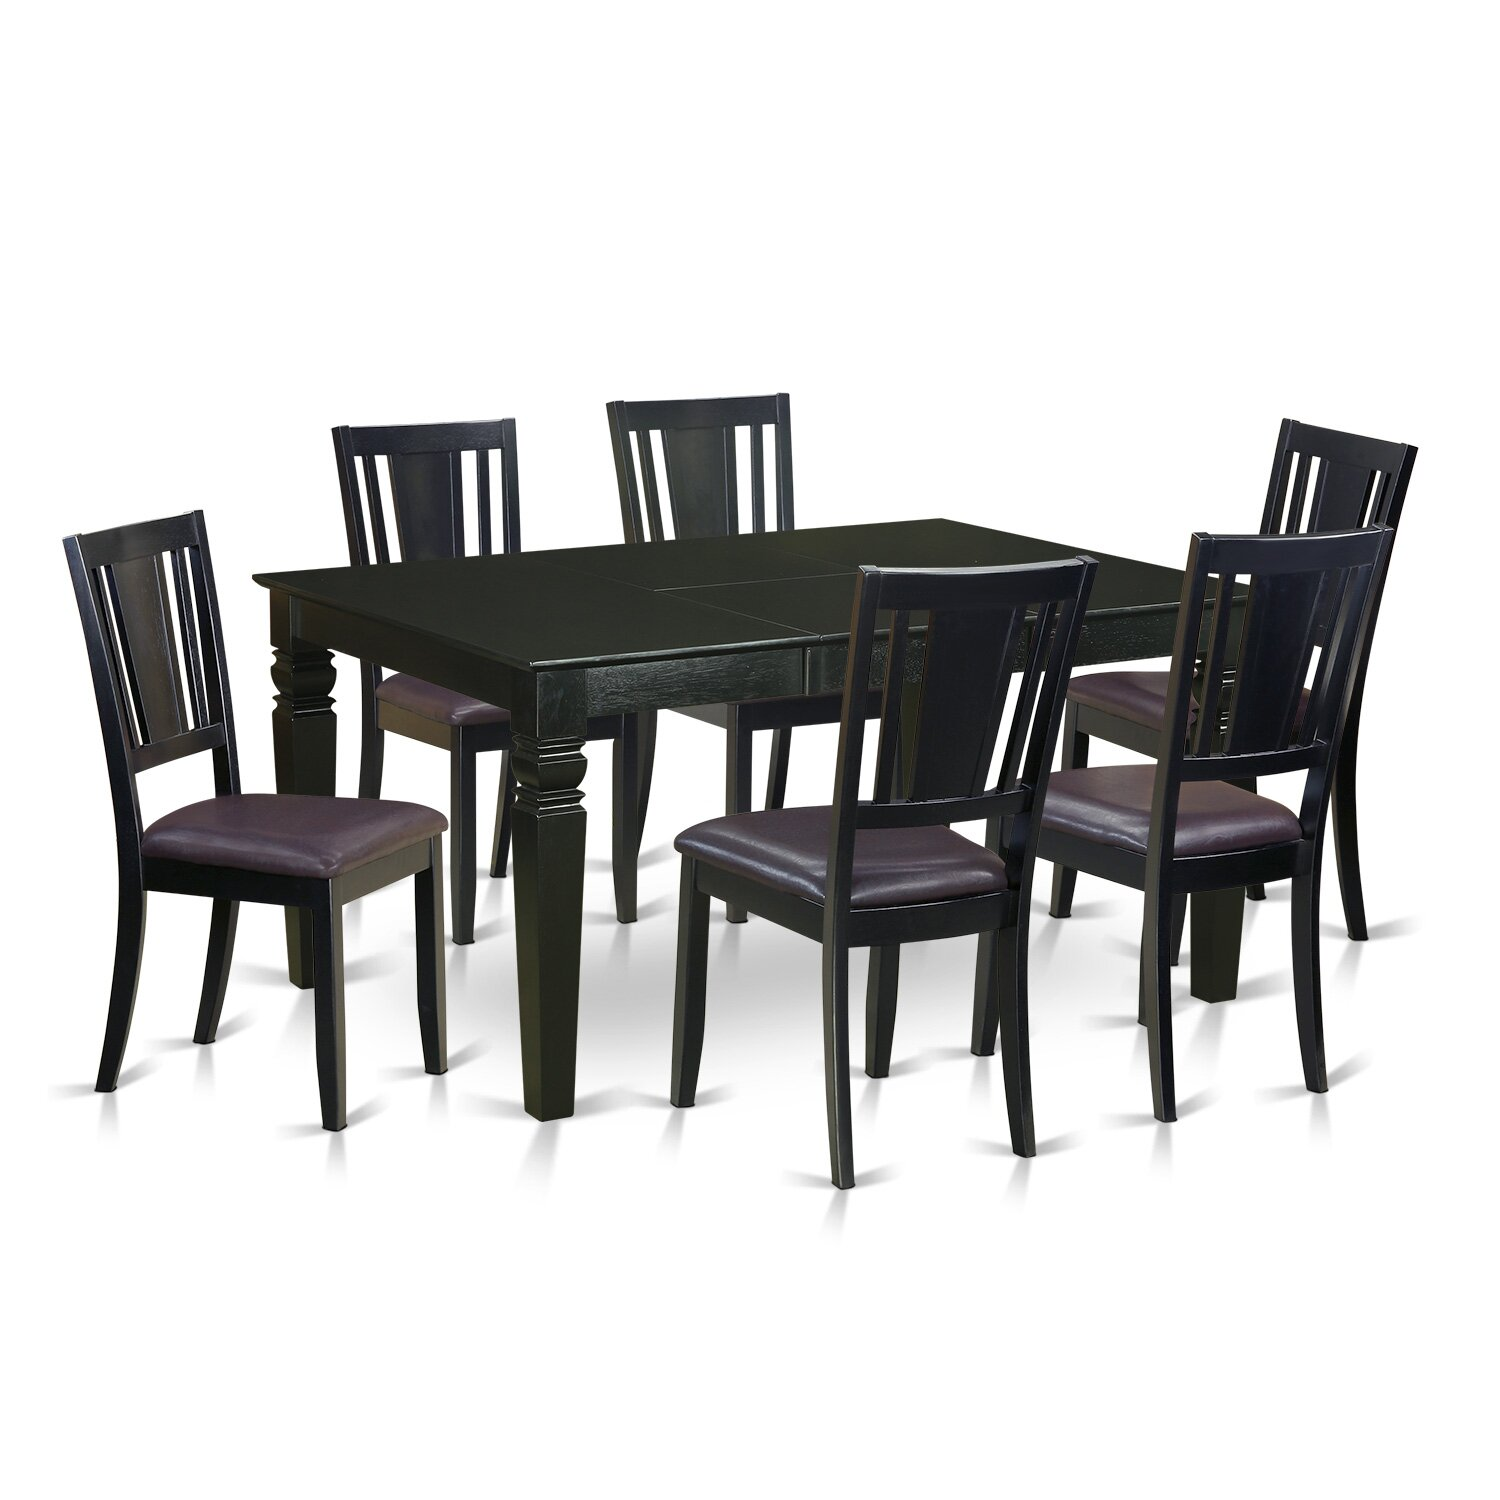 Wooden importers weston 7 piece dining set wayfair for Kitchen and dining room chairs